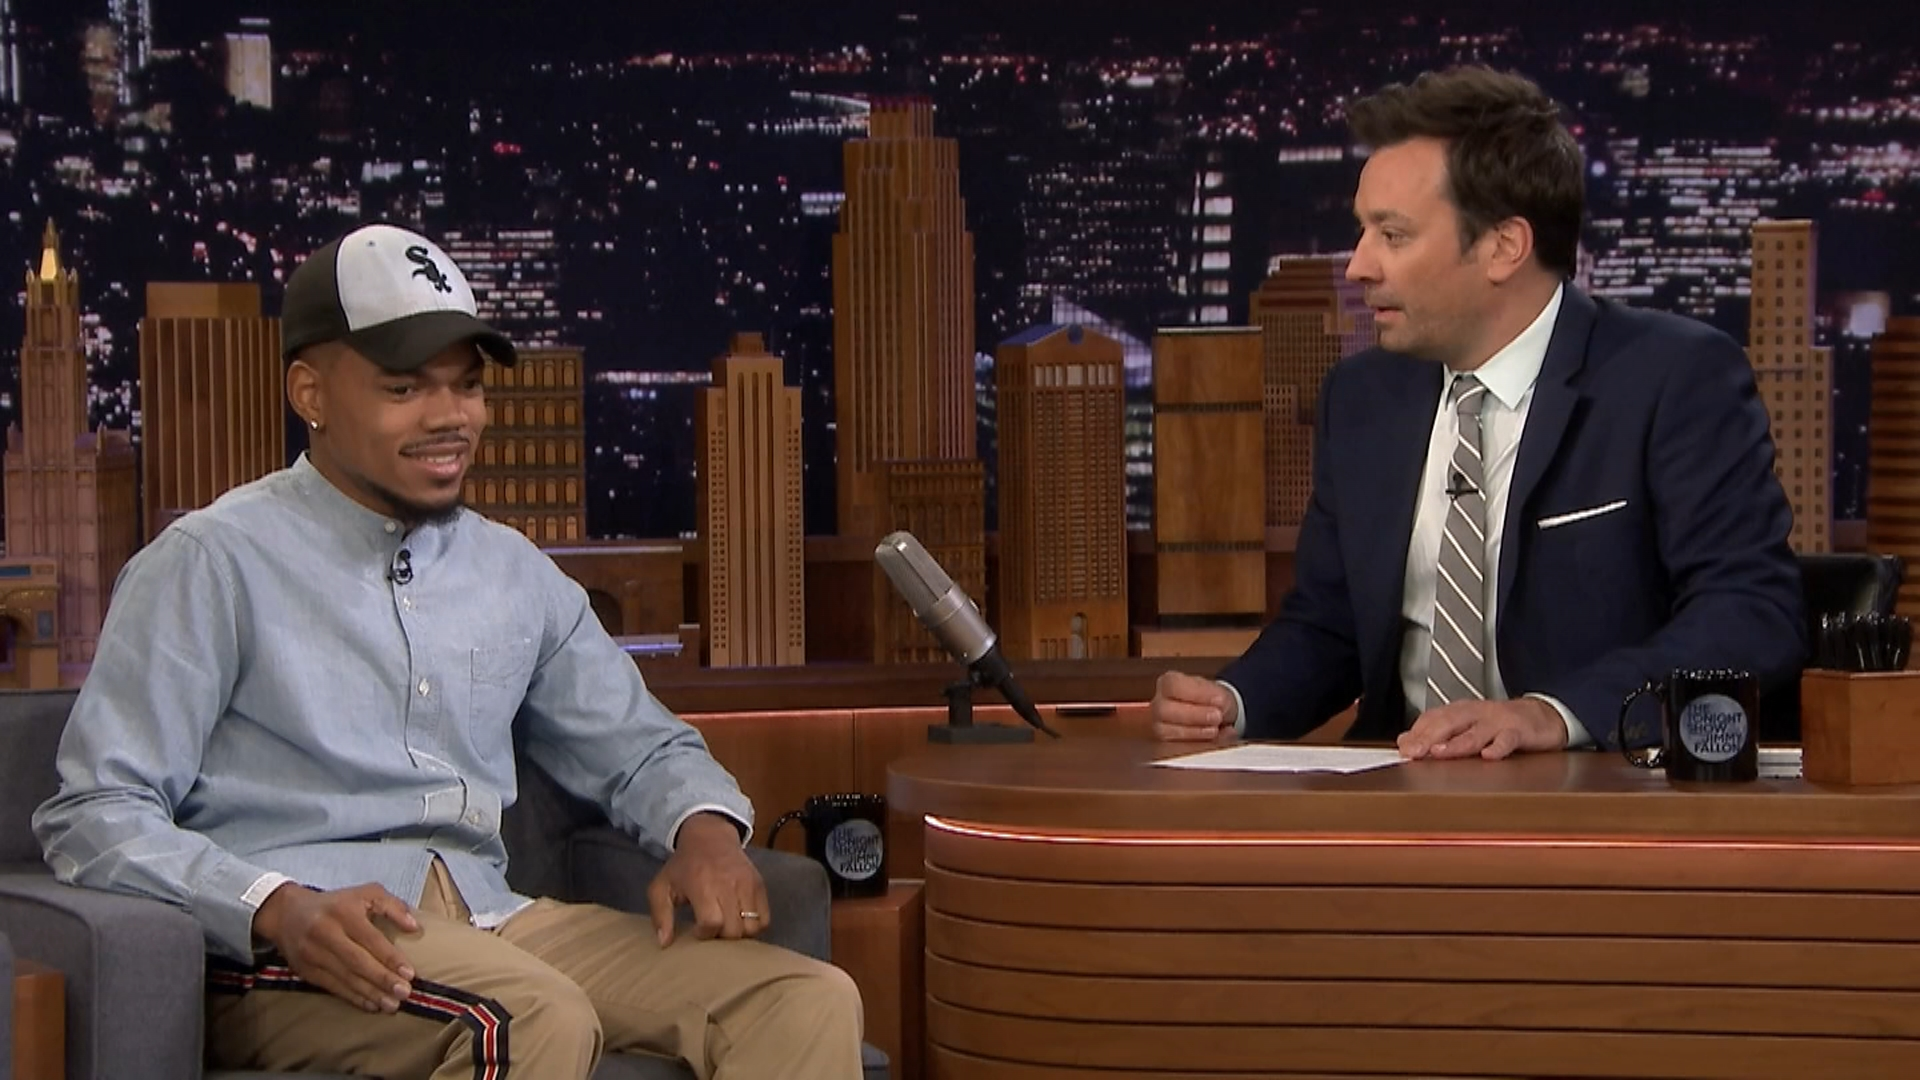 Chance the Rapper to Namesake Alligator: 'Keep Your Head Up'